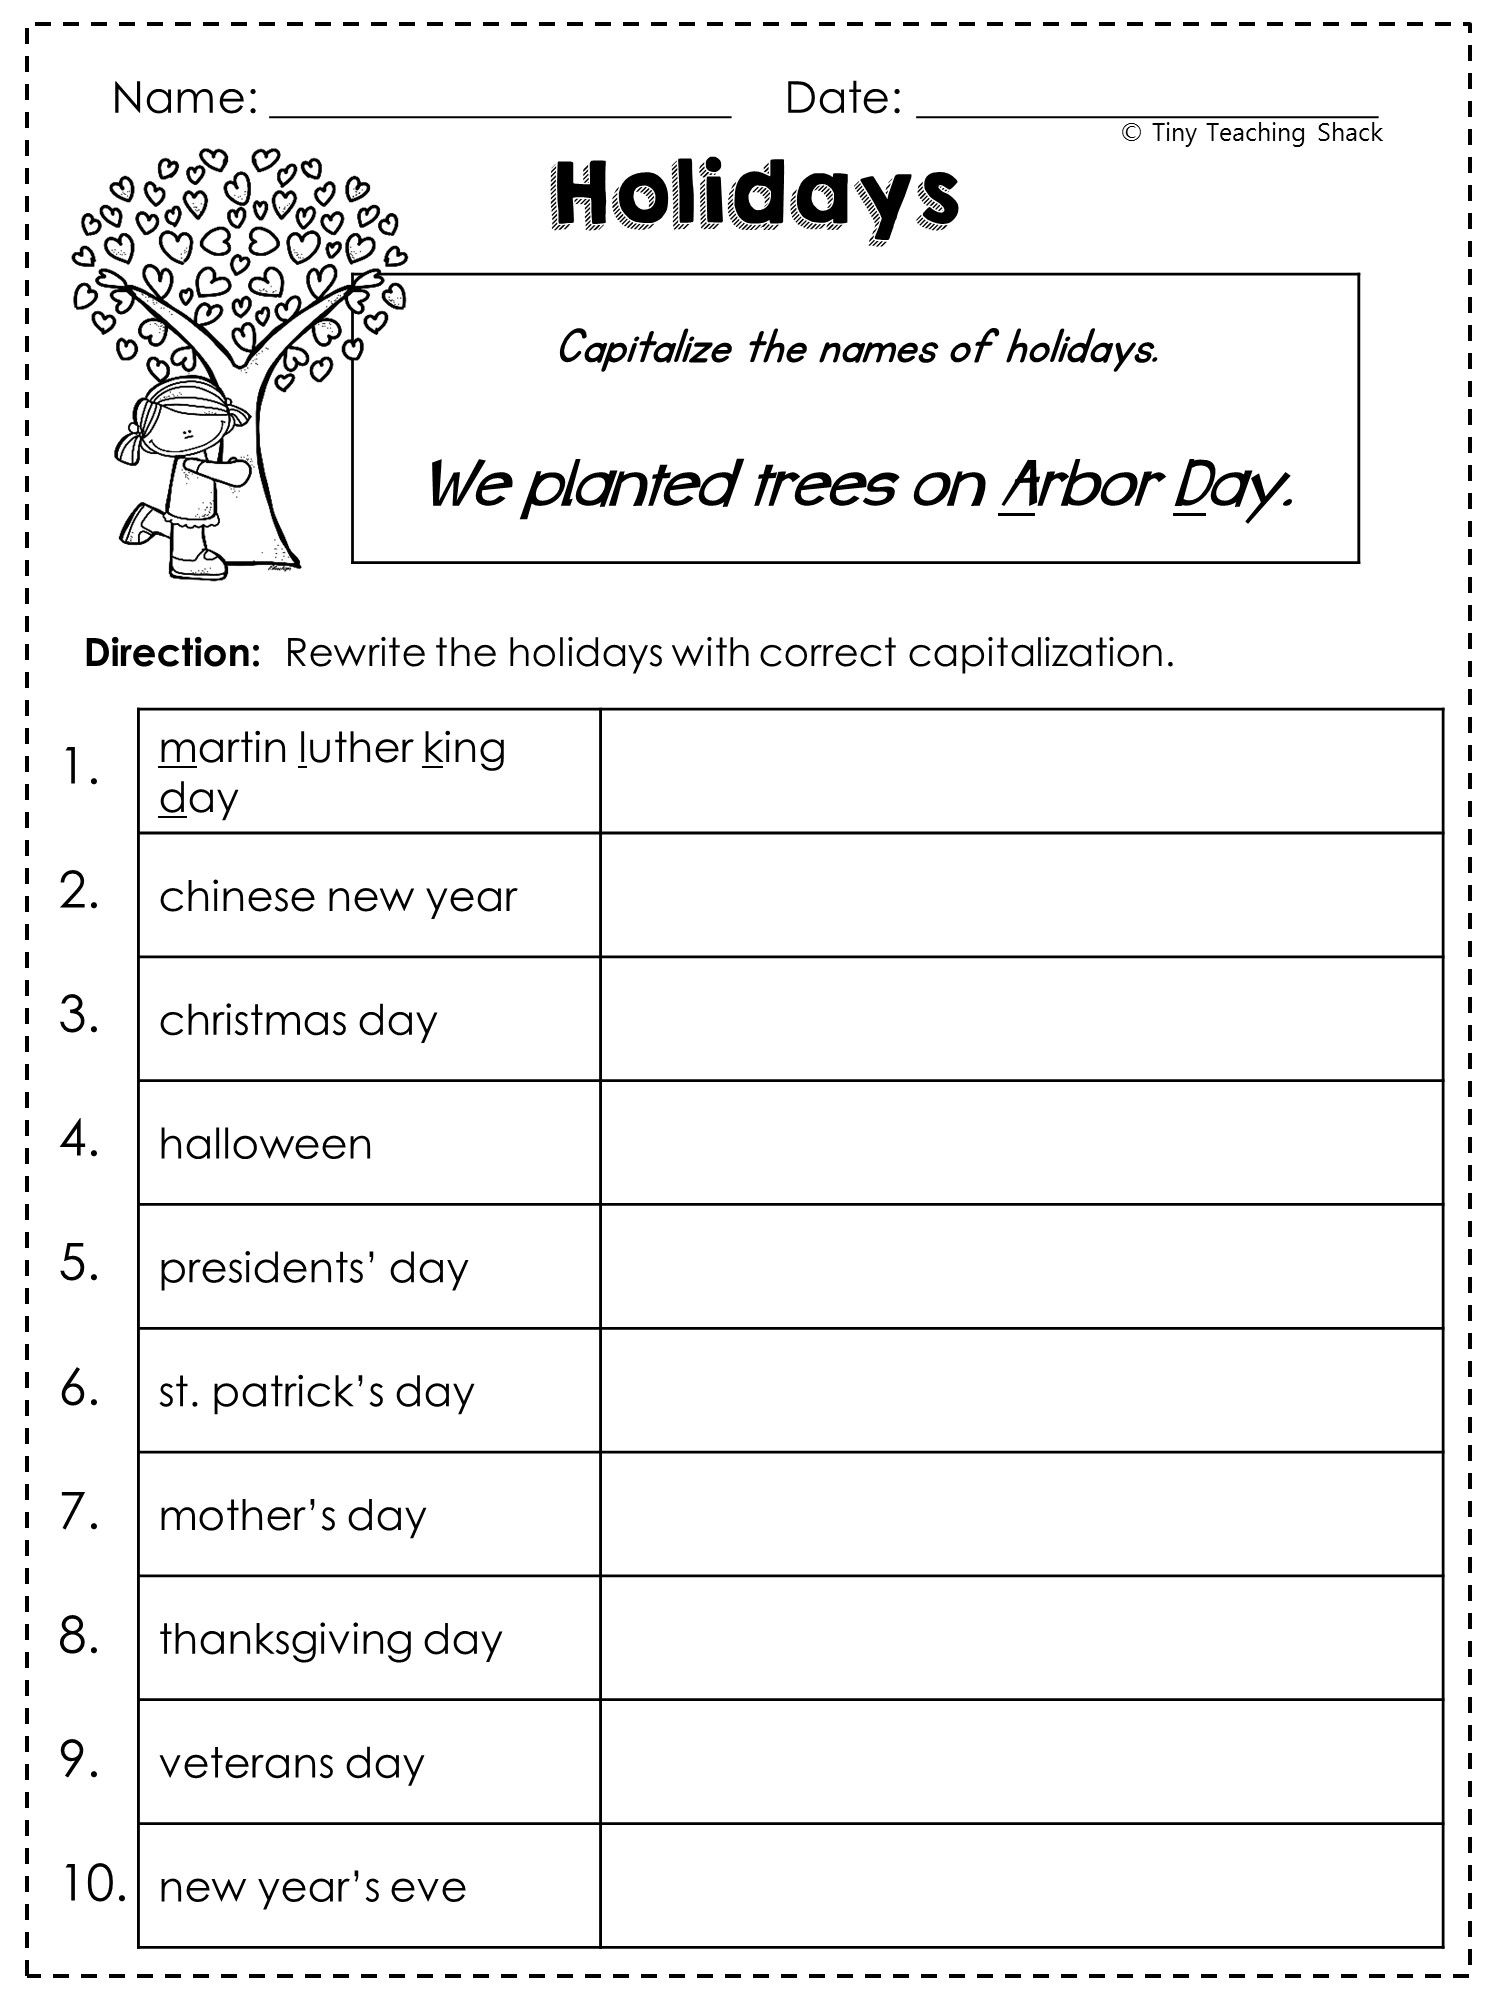 Worksheets Capitalization Worksheets For 4th Grade 2nd grade language arts and grammar practice sheets freebie common free capitalization worksheet